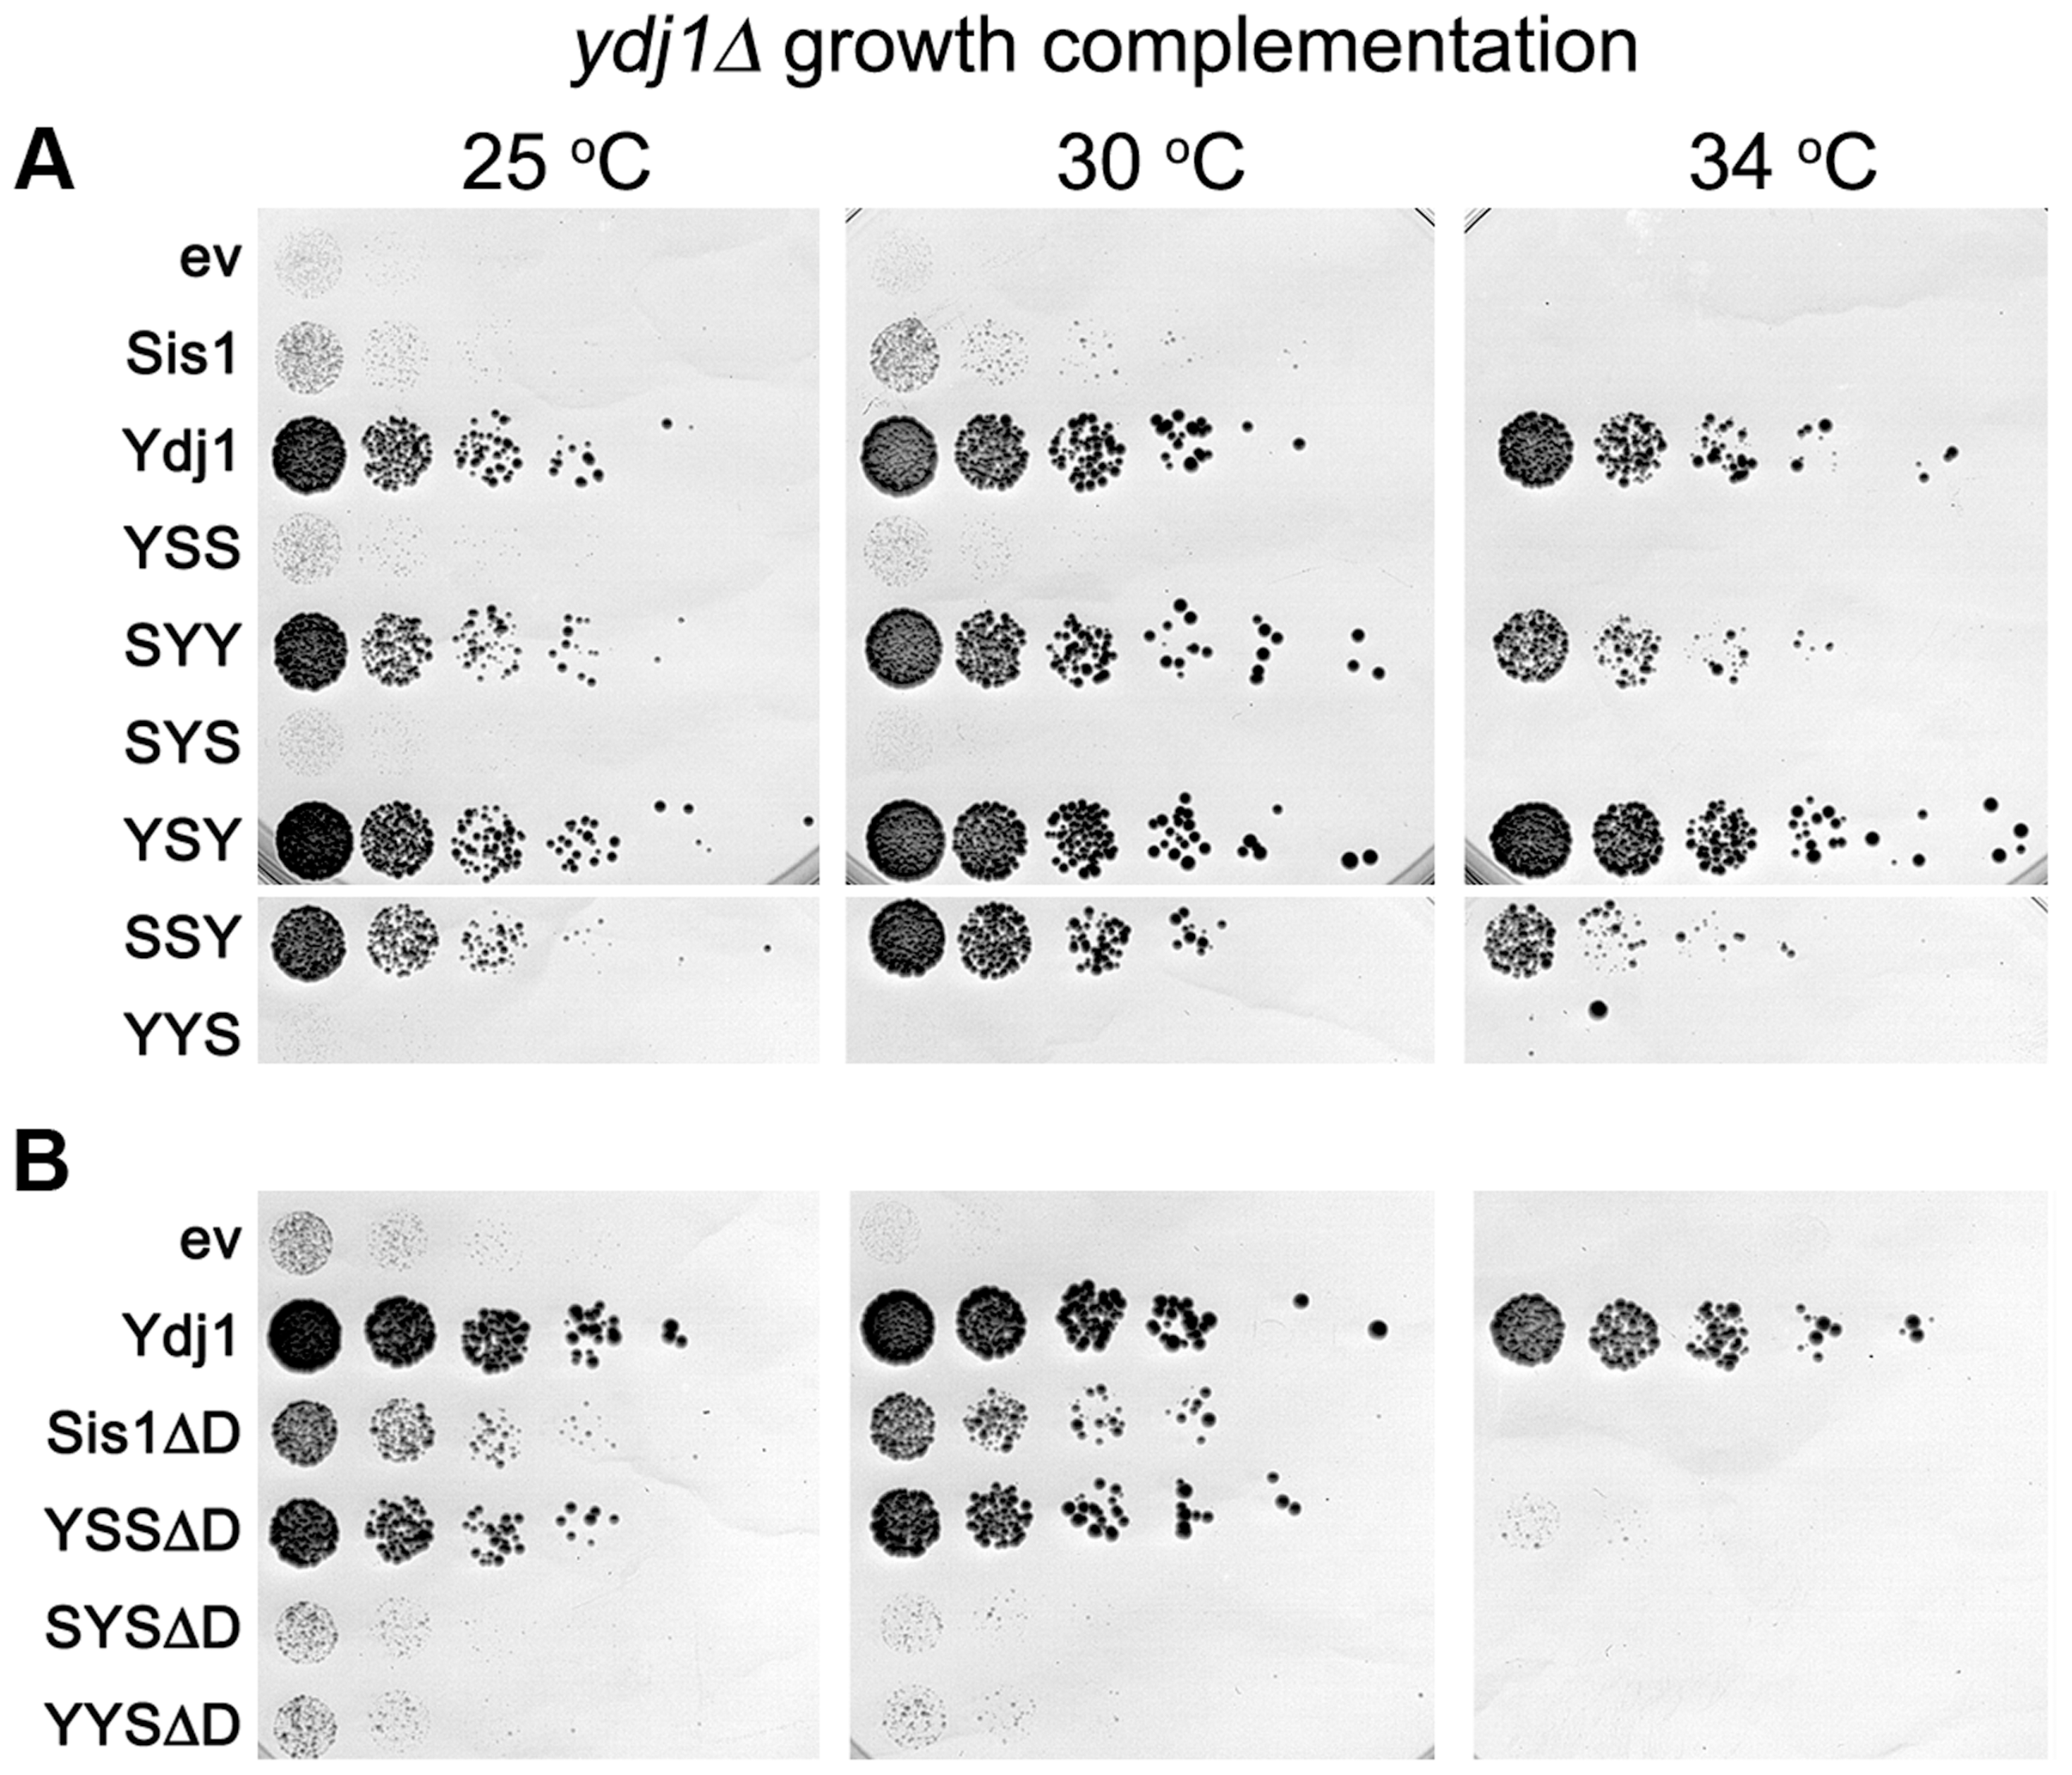 Growth complementation by Sis1/Ydj1 hybrids in place of Ydj1.